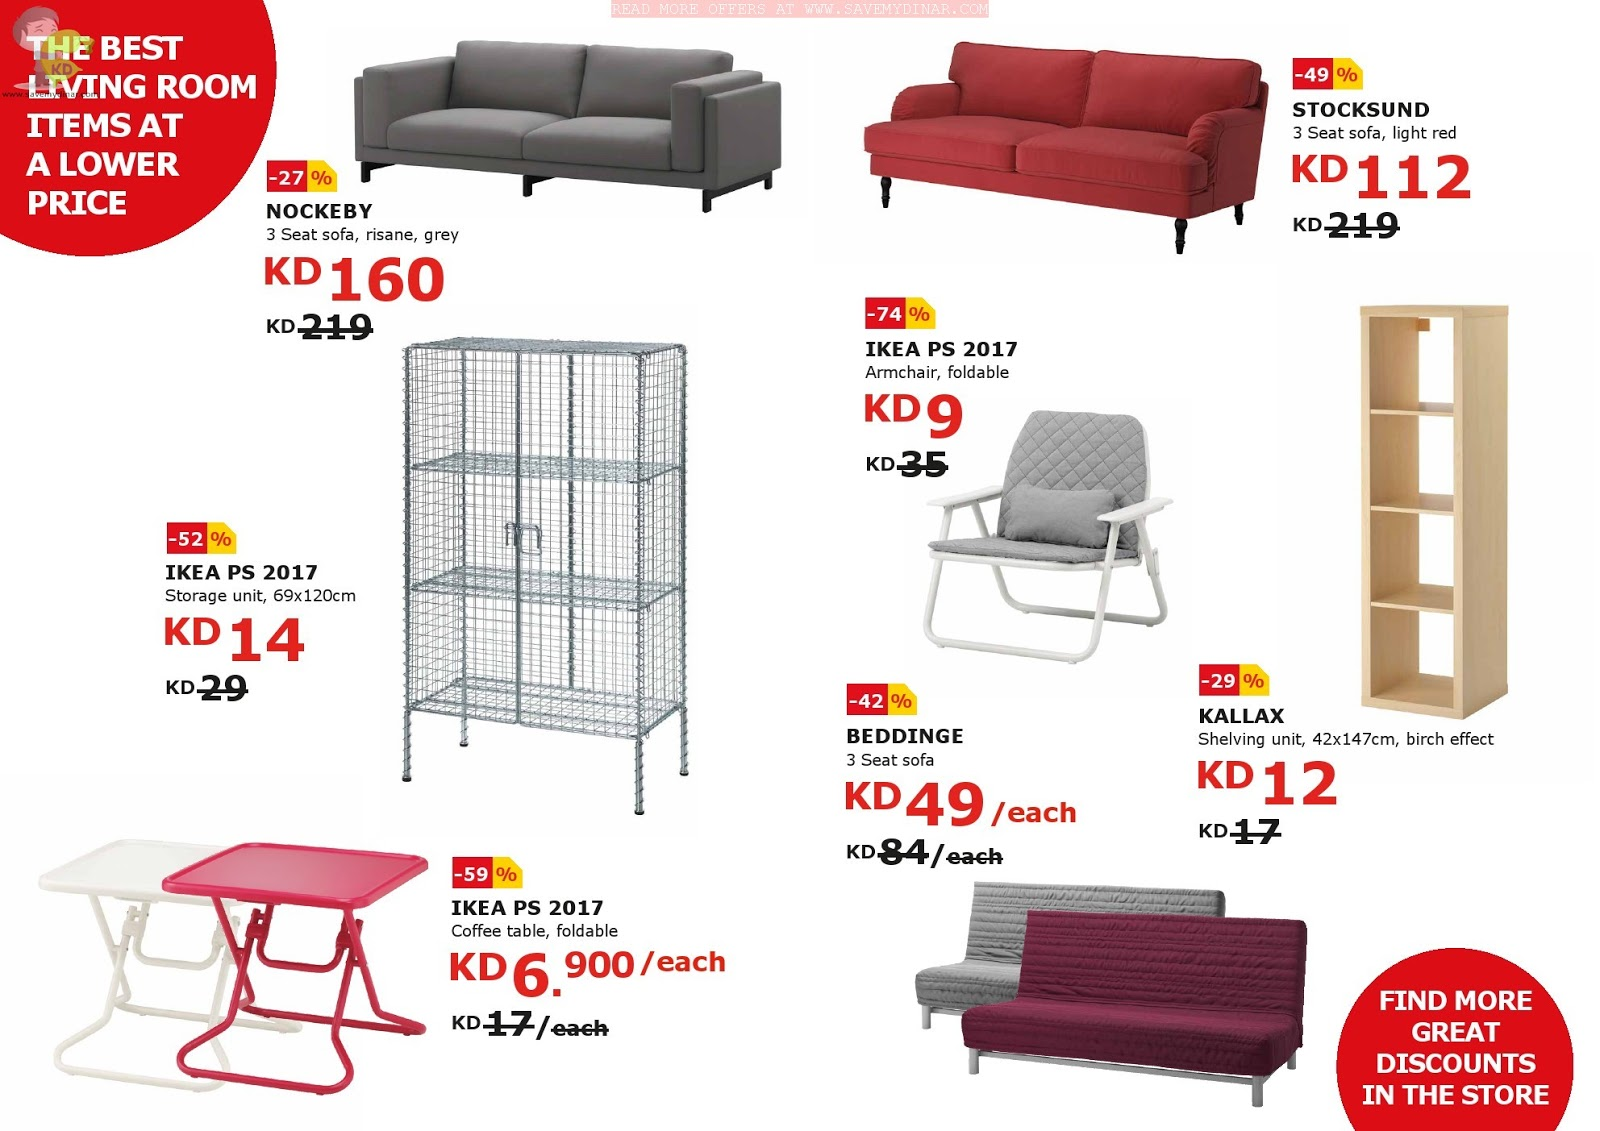 Banks For Sale >> IKEA Kuwait - Spring SALE (Full Brochure) | SaveMyDinar ...